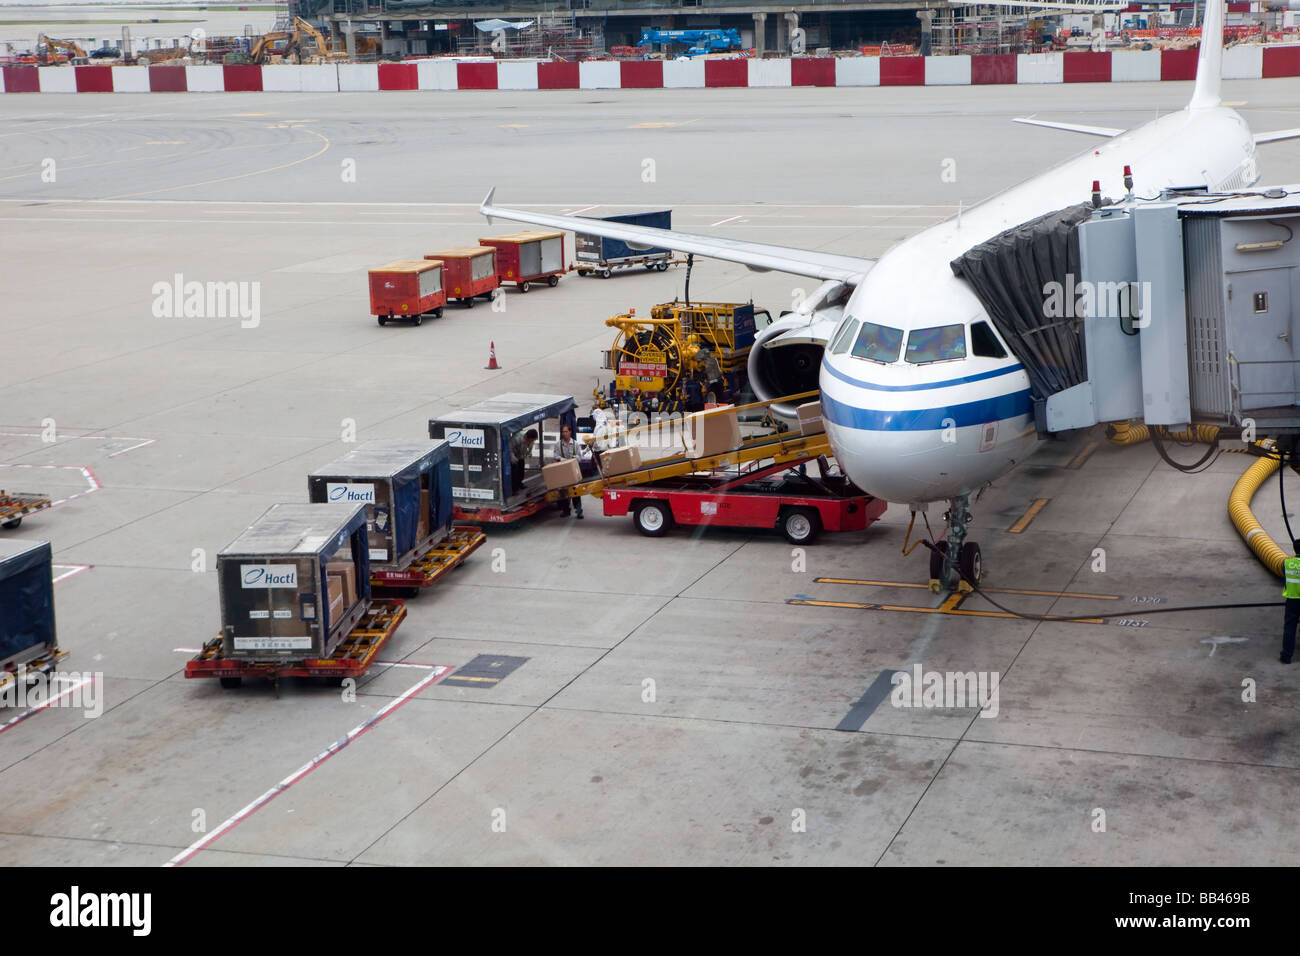 Workers prepare a plane at the Hong Kong International Airport - Stock Image